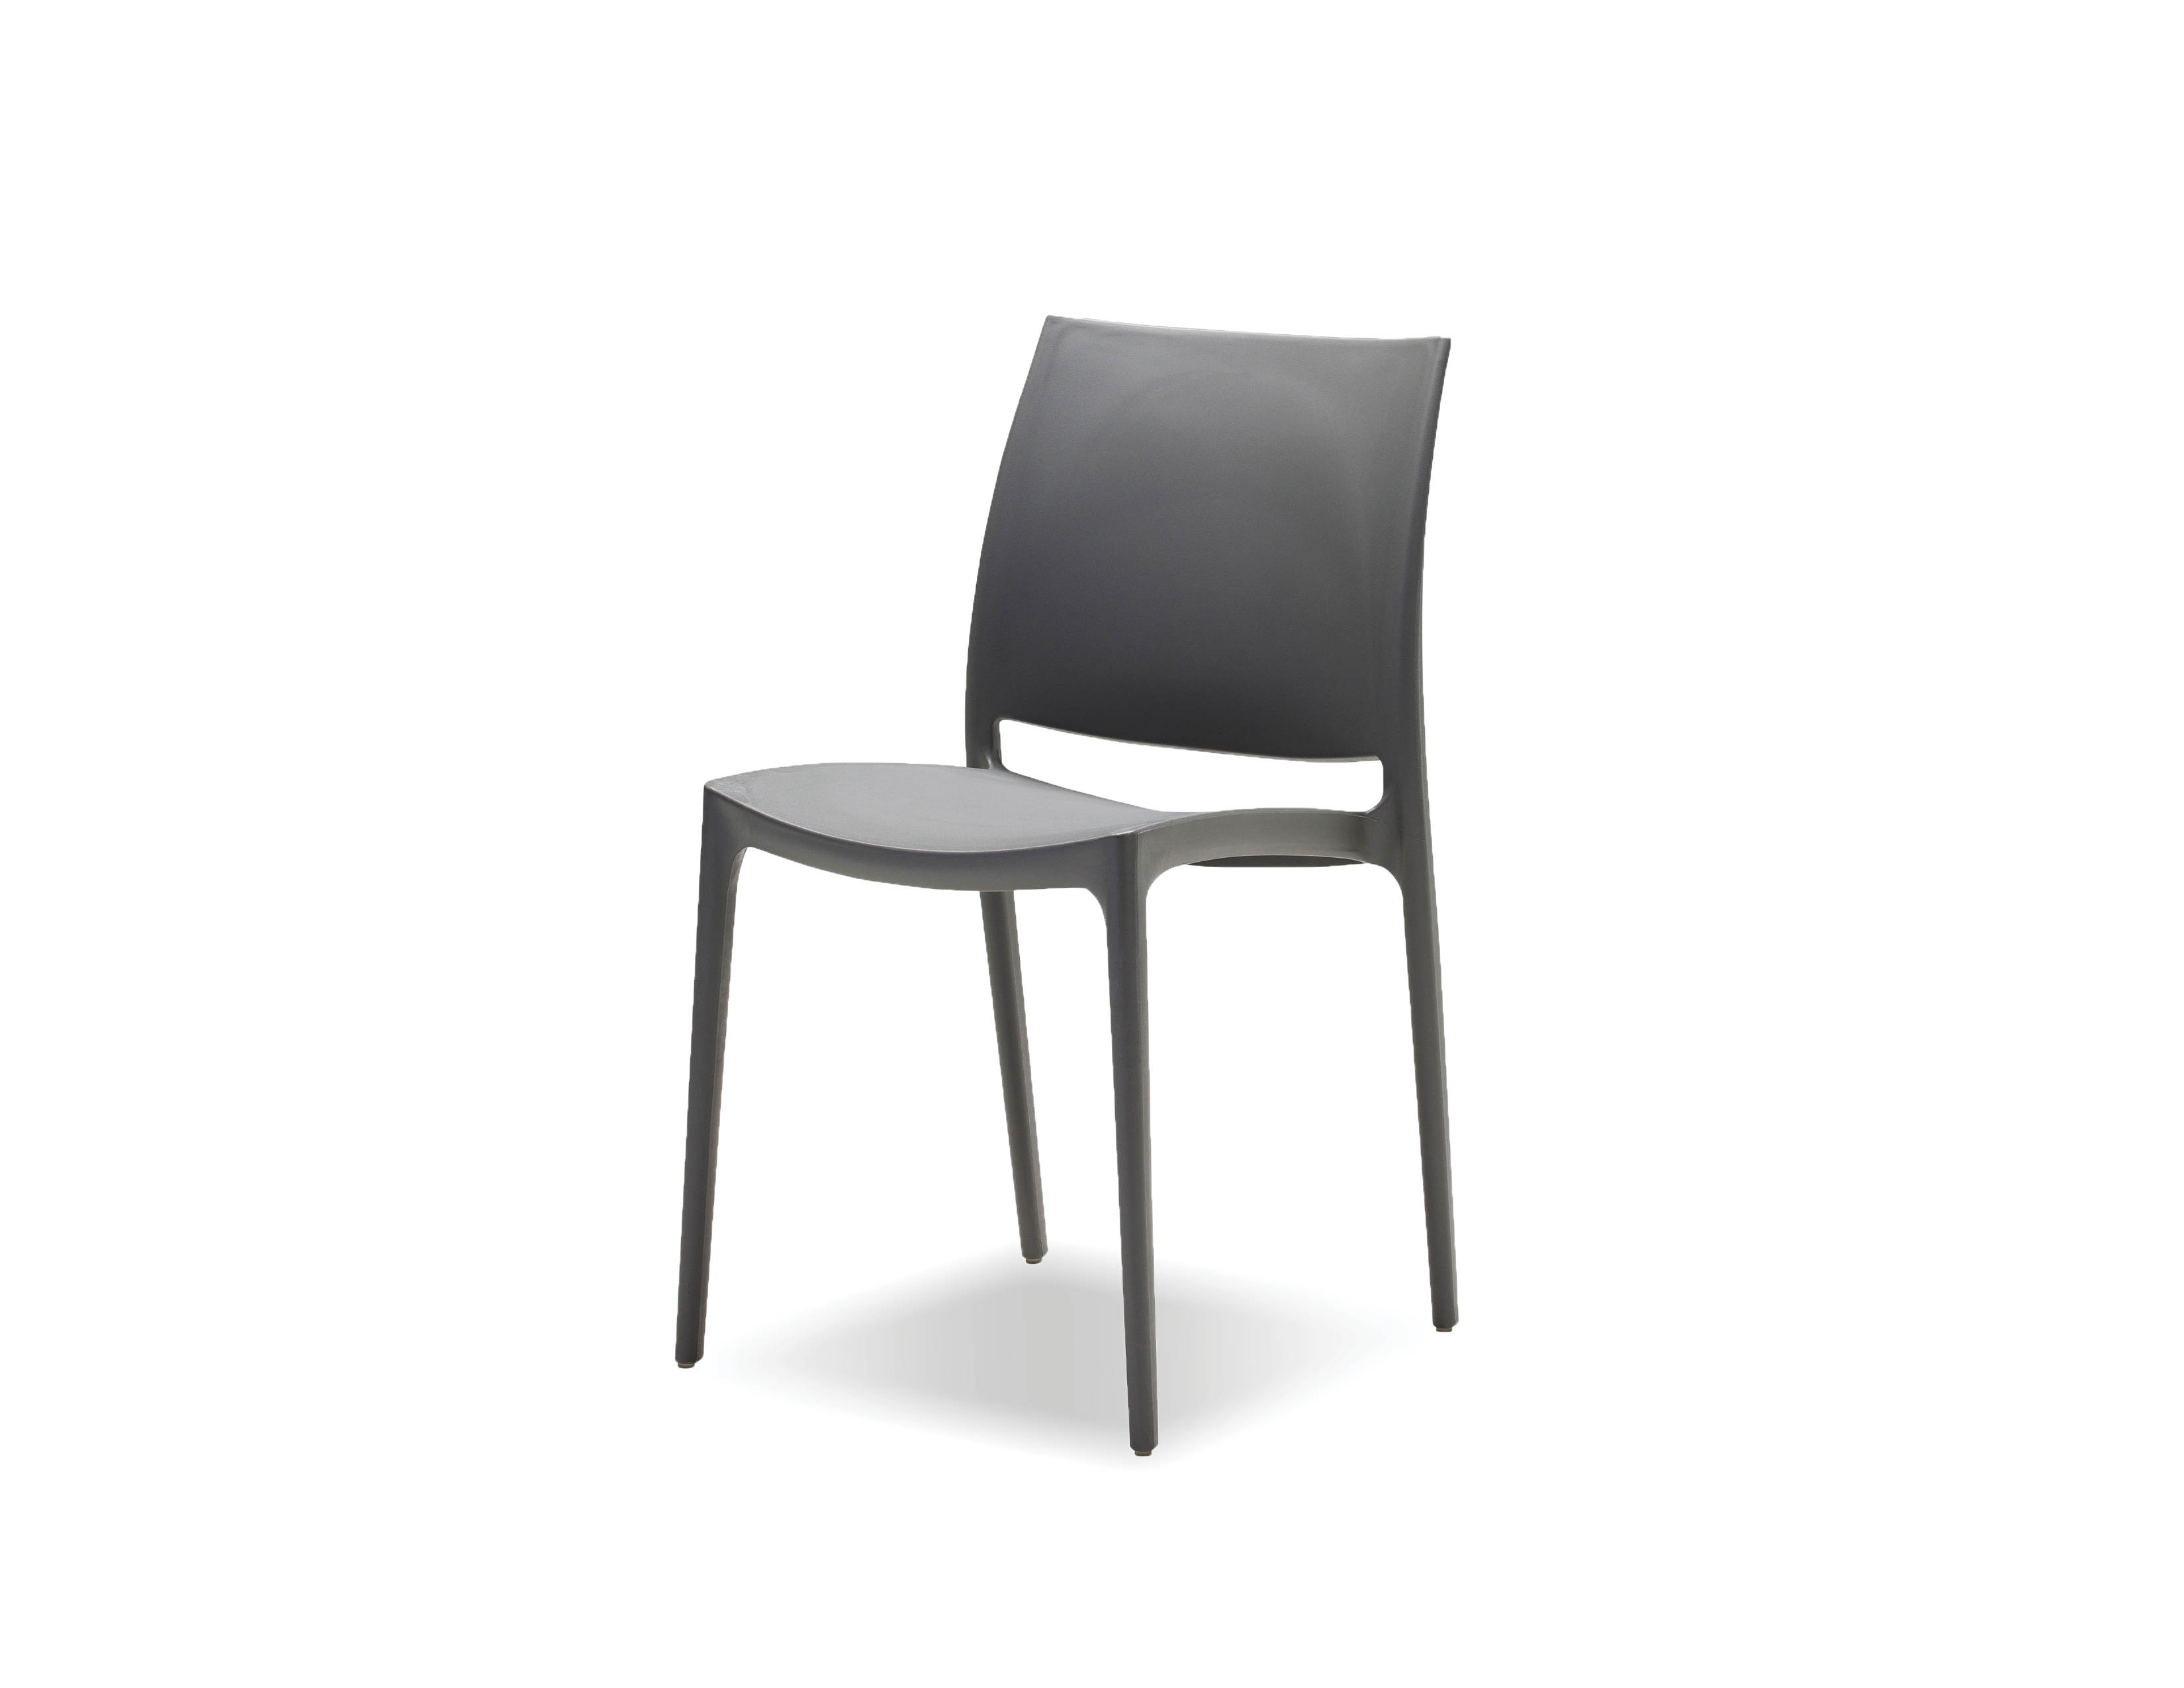 Surprising 4 Mobital Vata Grey Polypropylene Dining Chairs Gmtry Best Dining Table And Chair Ideas Images Gmtryco